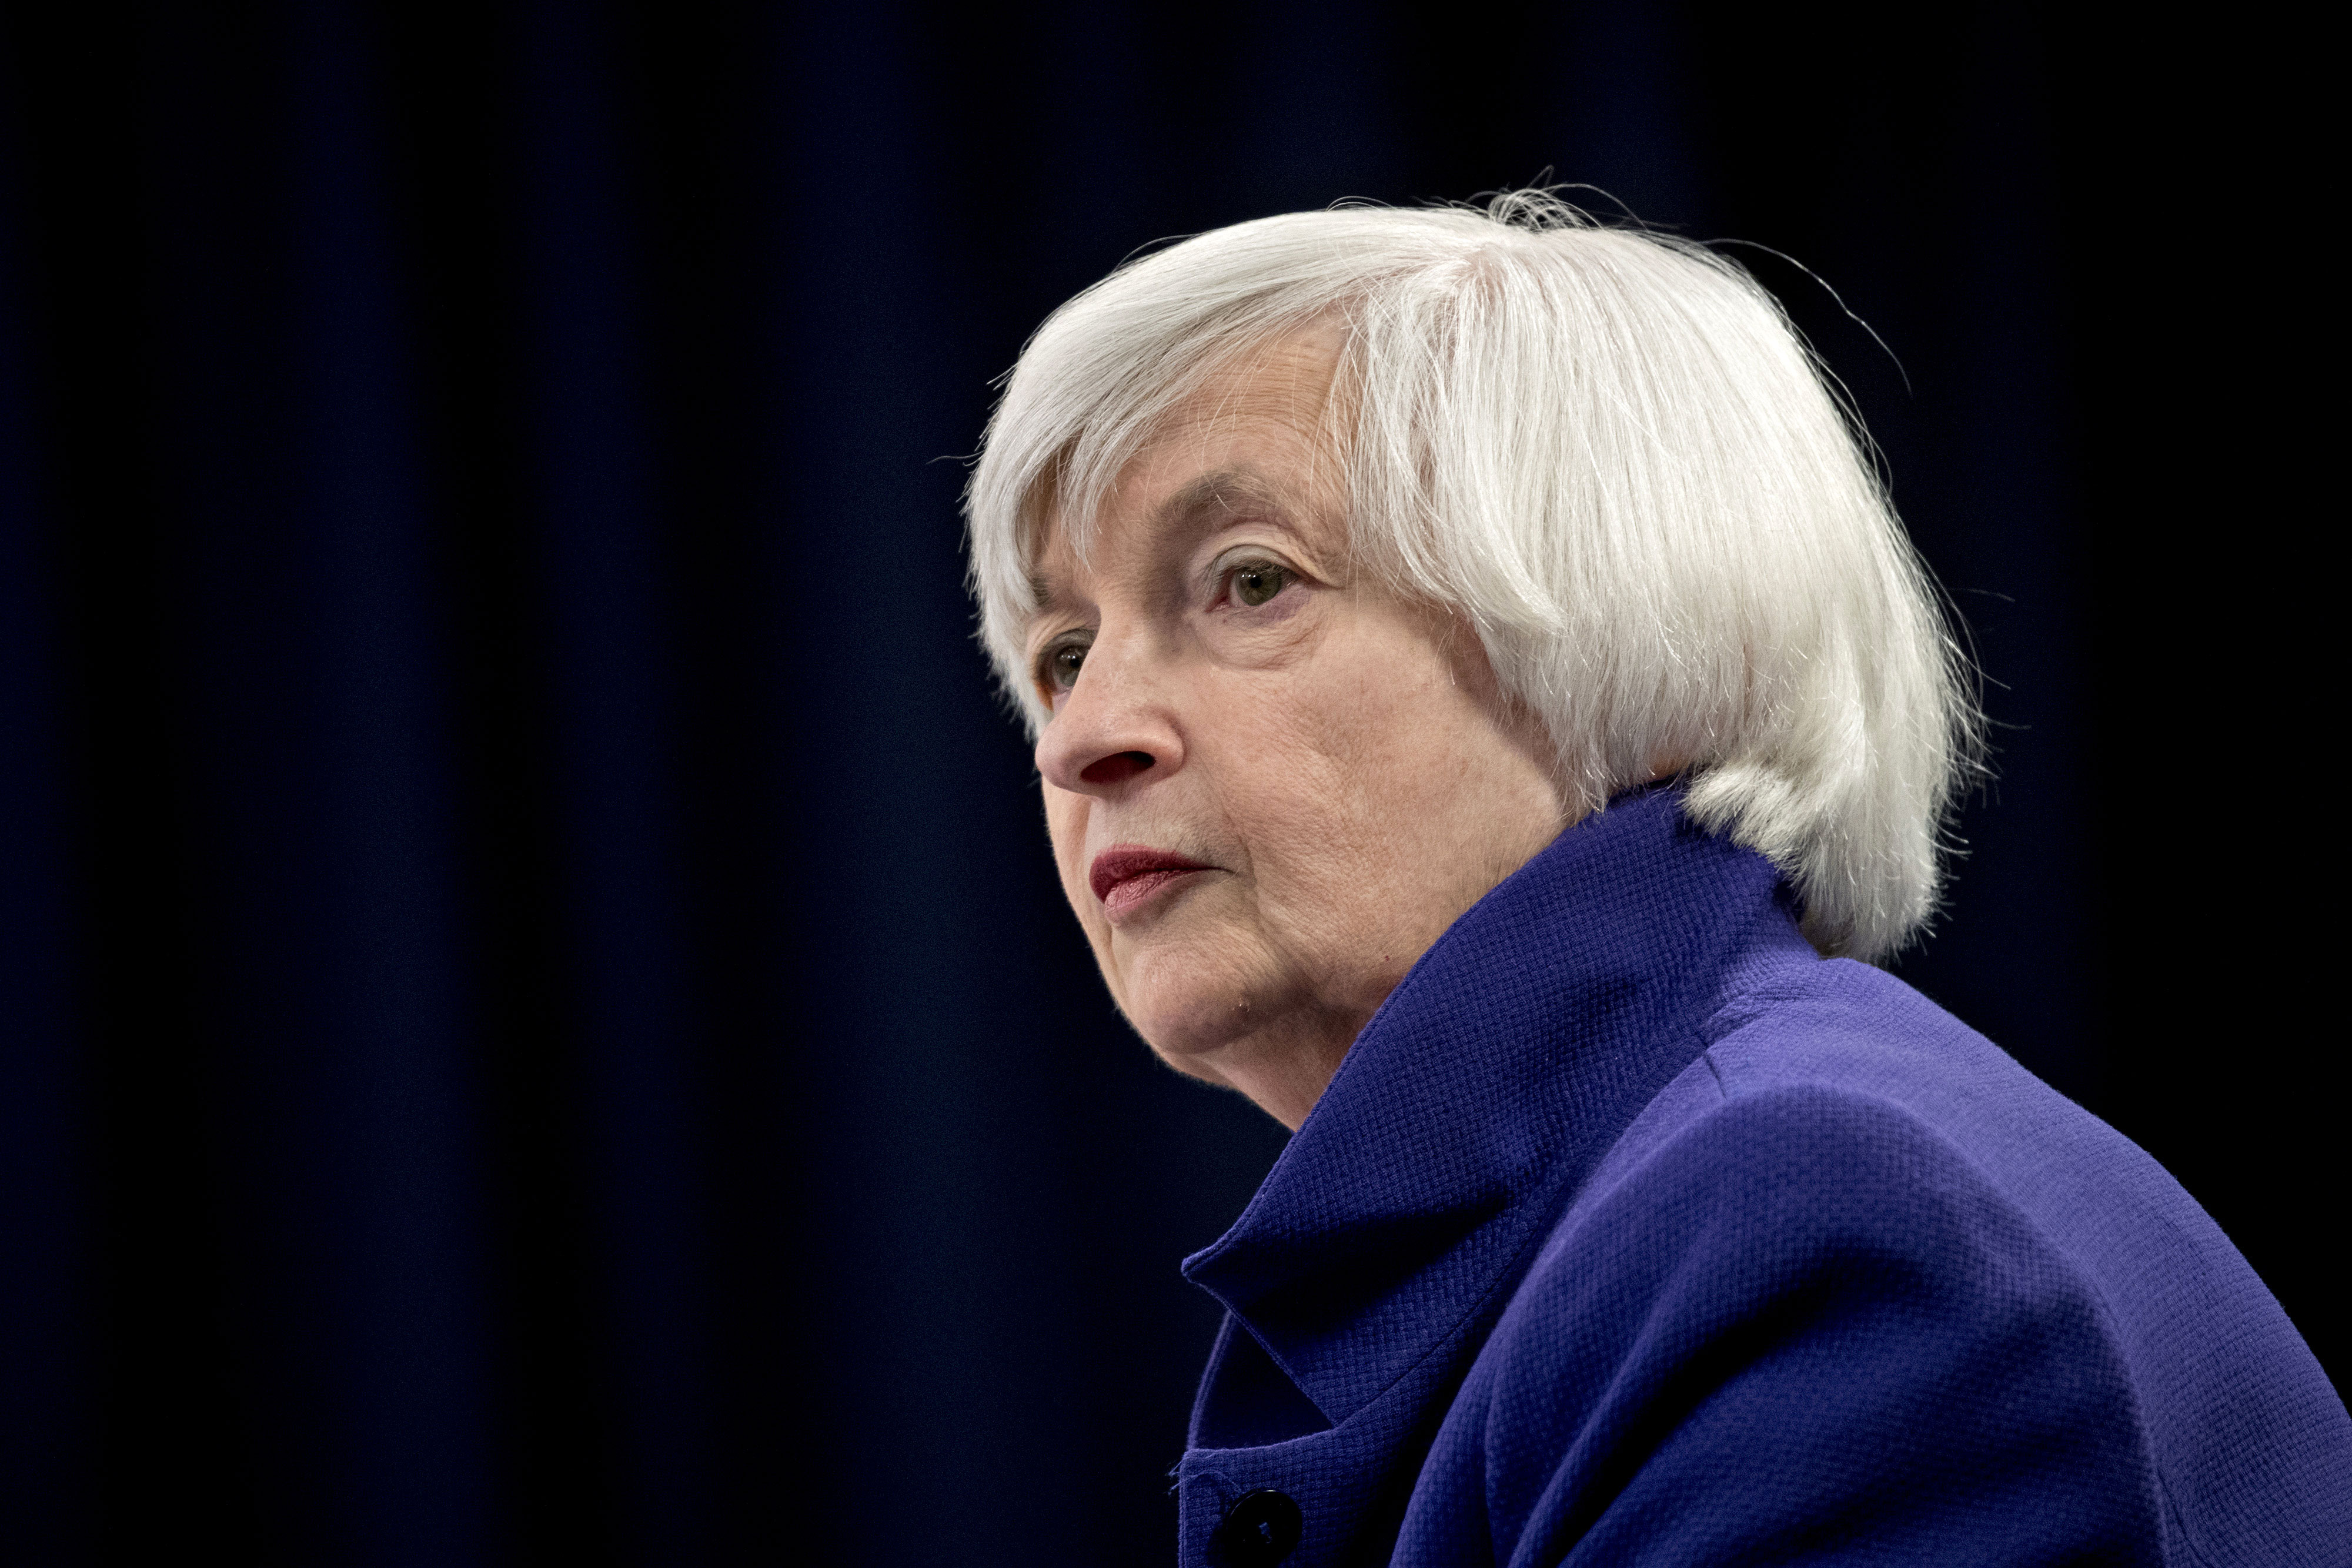 Janet Yellen, then chair of the Federal Reserve, listens to a question during a news conference in Washington, DC, on December 13, 2017.